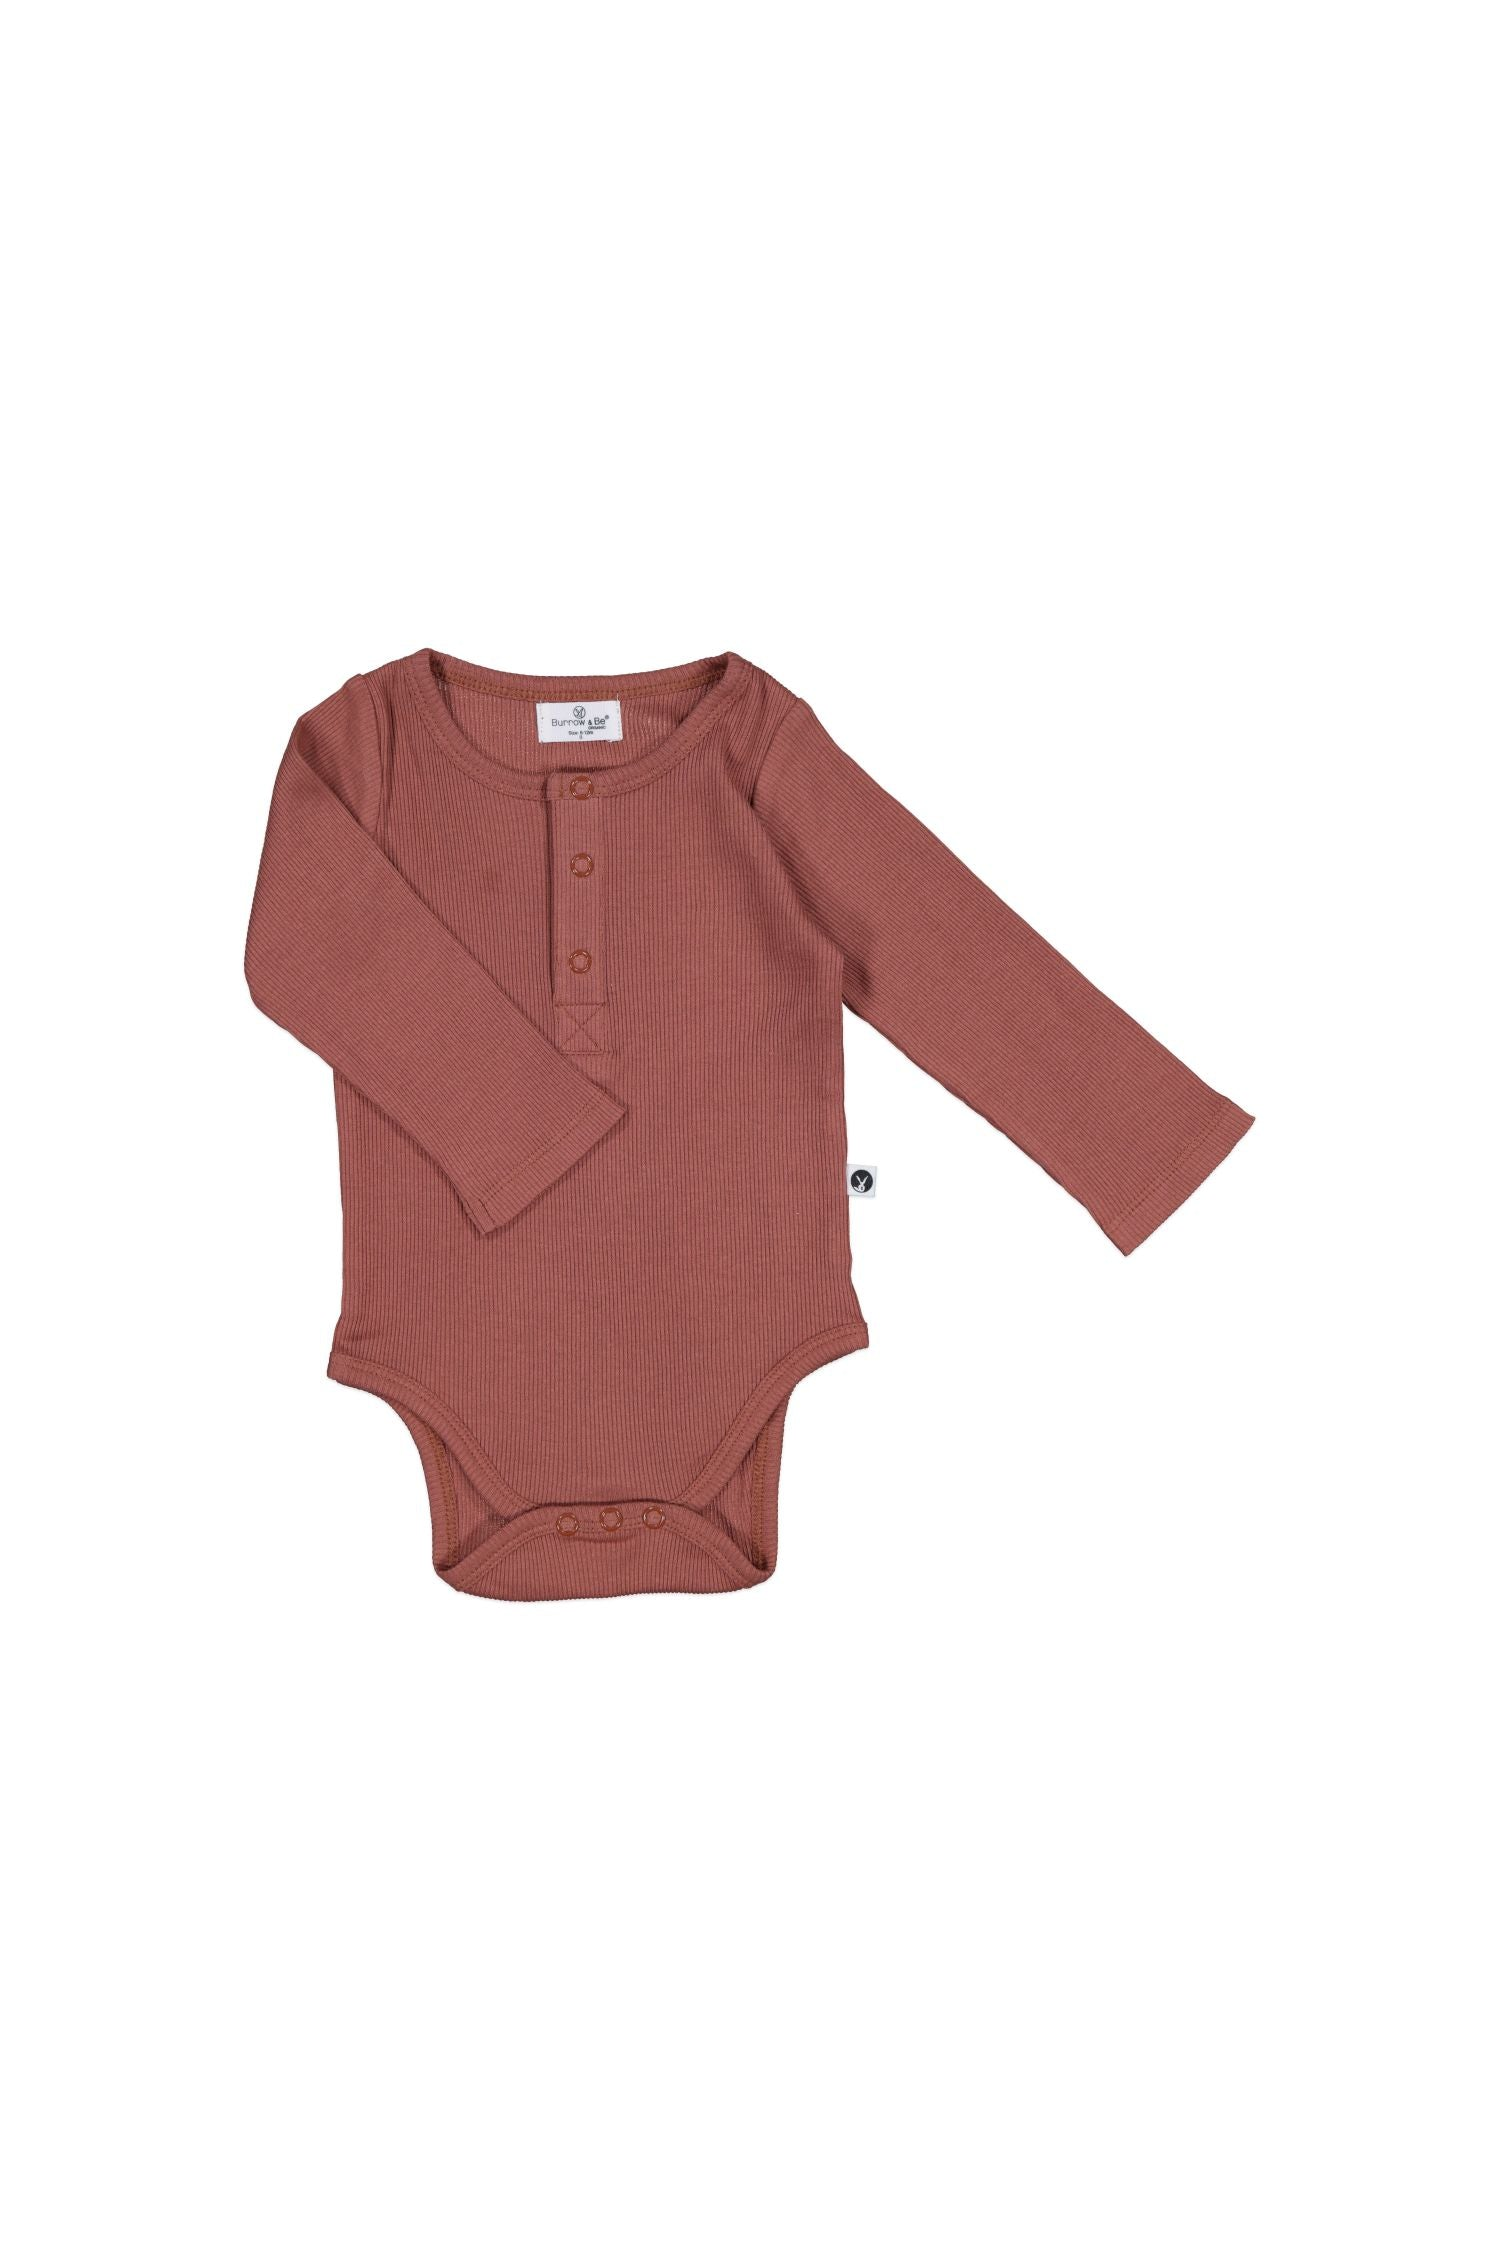 Rib Henley Body suit - Clay